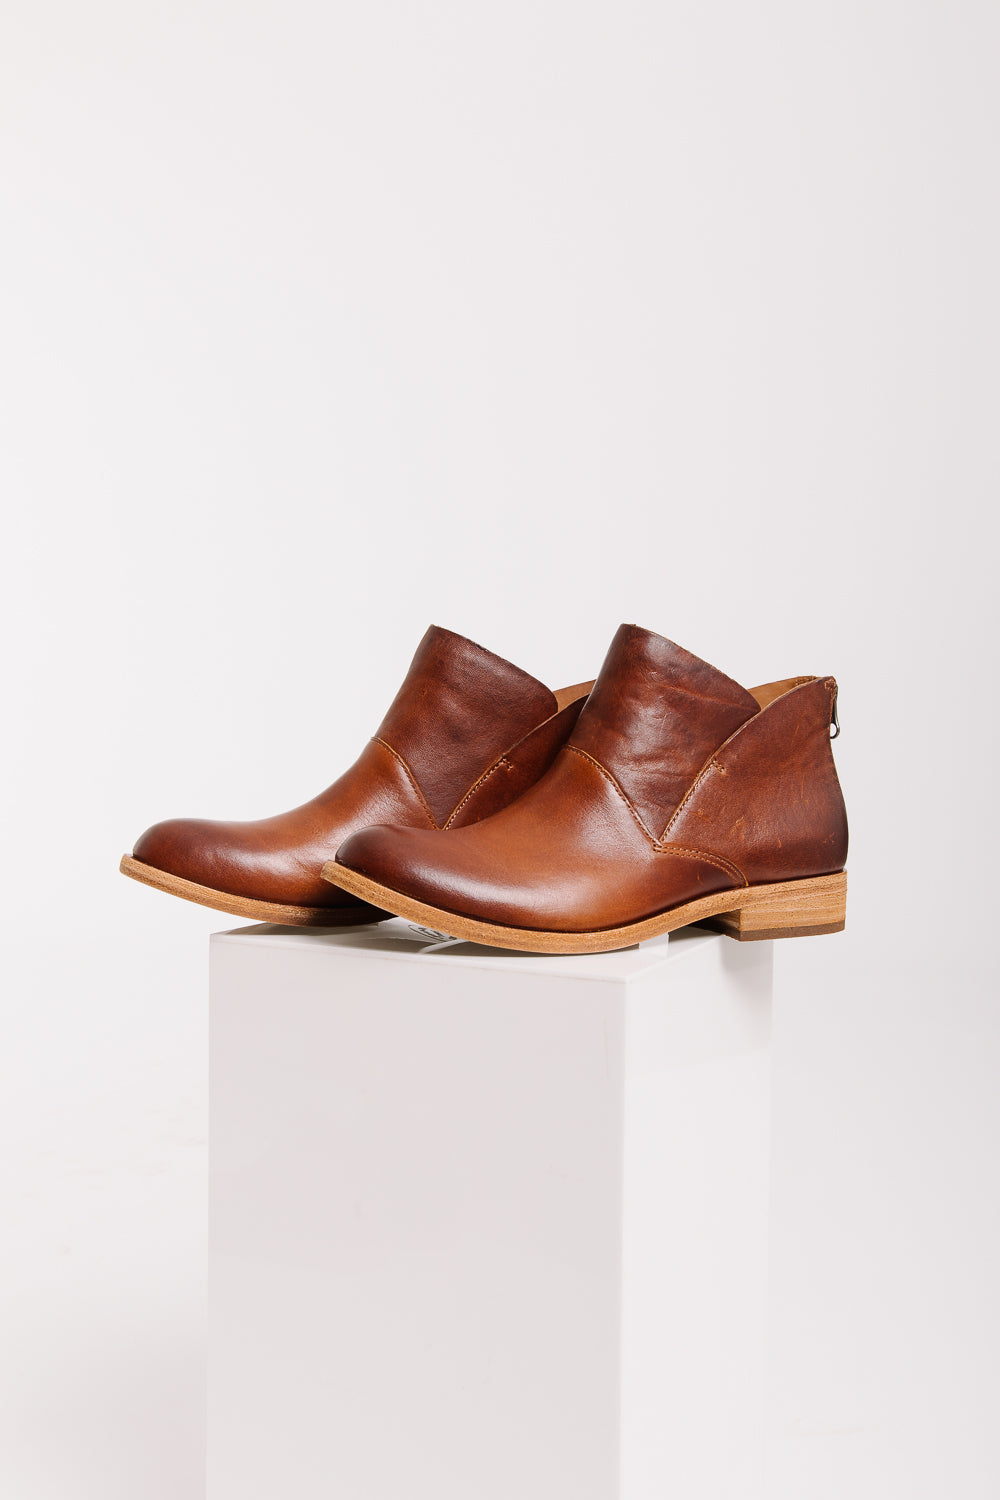 Kork-Ease: Ryder Boot in Sattle